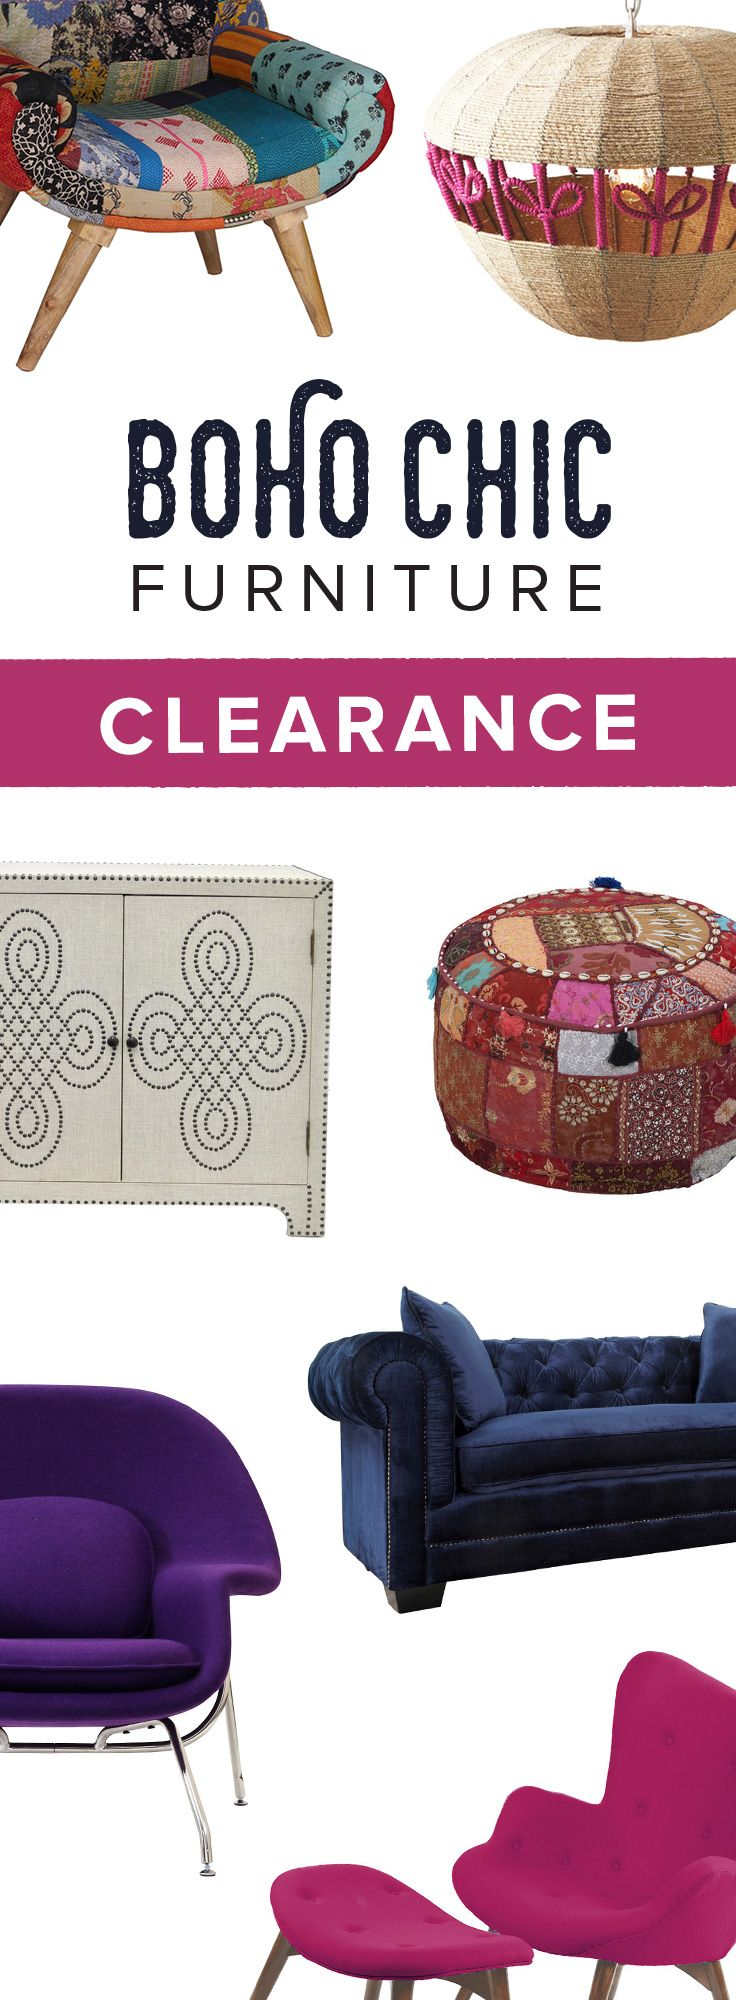 Memorial Day Weekend Clearance Sale! Shop Modern Bohemian Furniture & Décor Before It's All Gone at dotandbo.com | Sale Runs 5/22-5/25